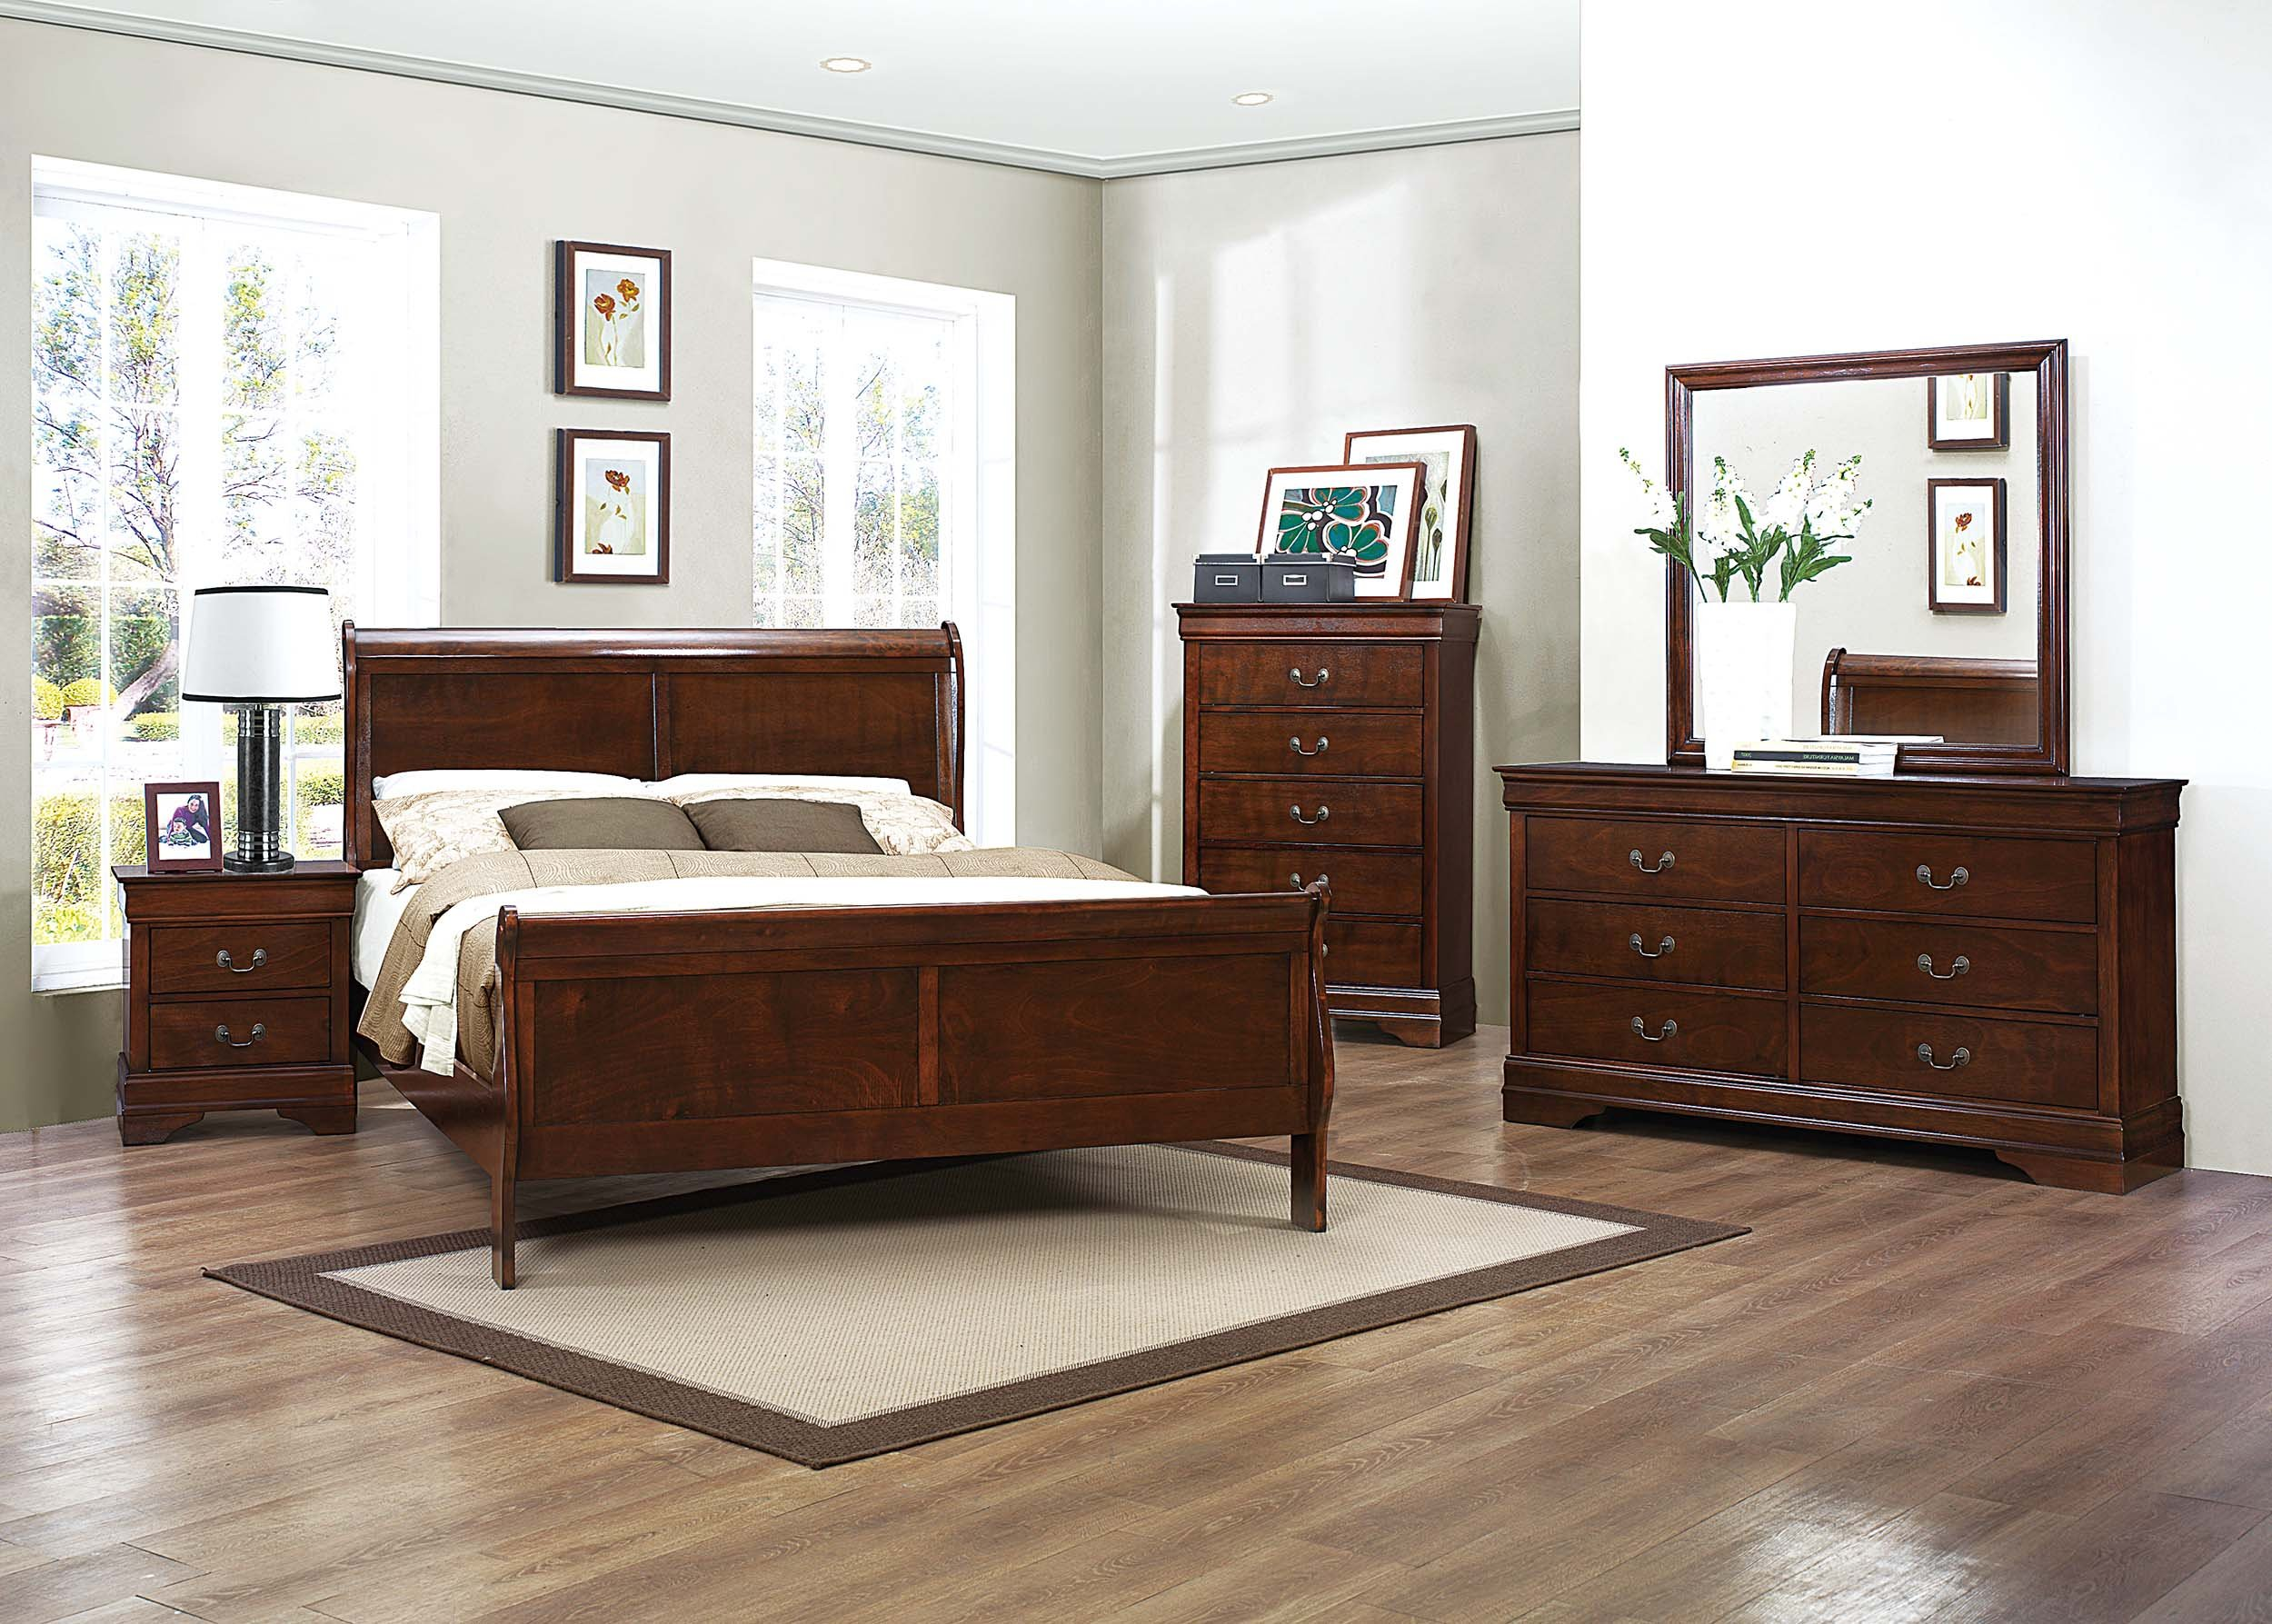 Homelegance Mayville Full Sleigh Bed Frame, Cherry by Homelegance (Image #2)